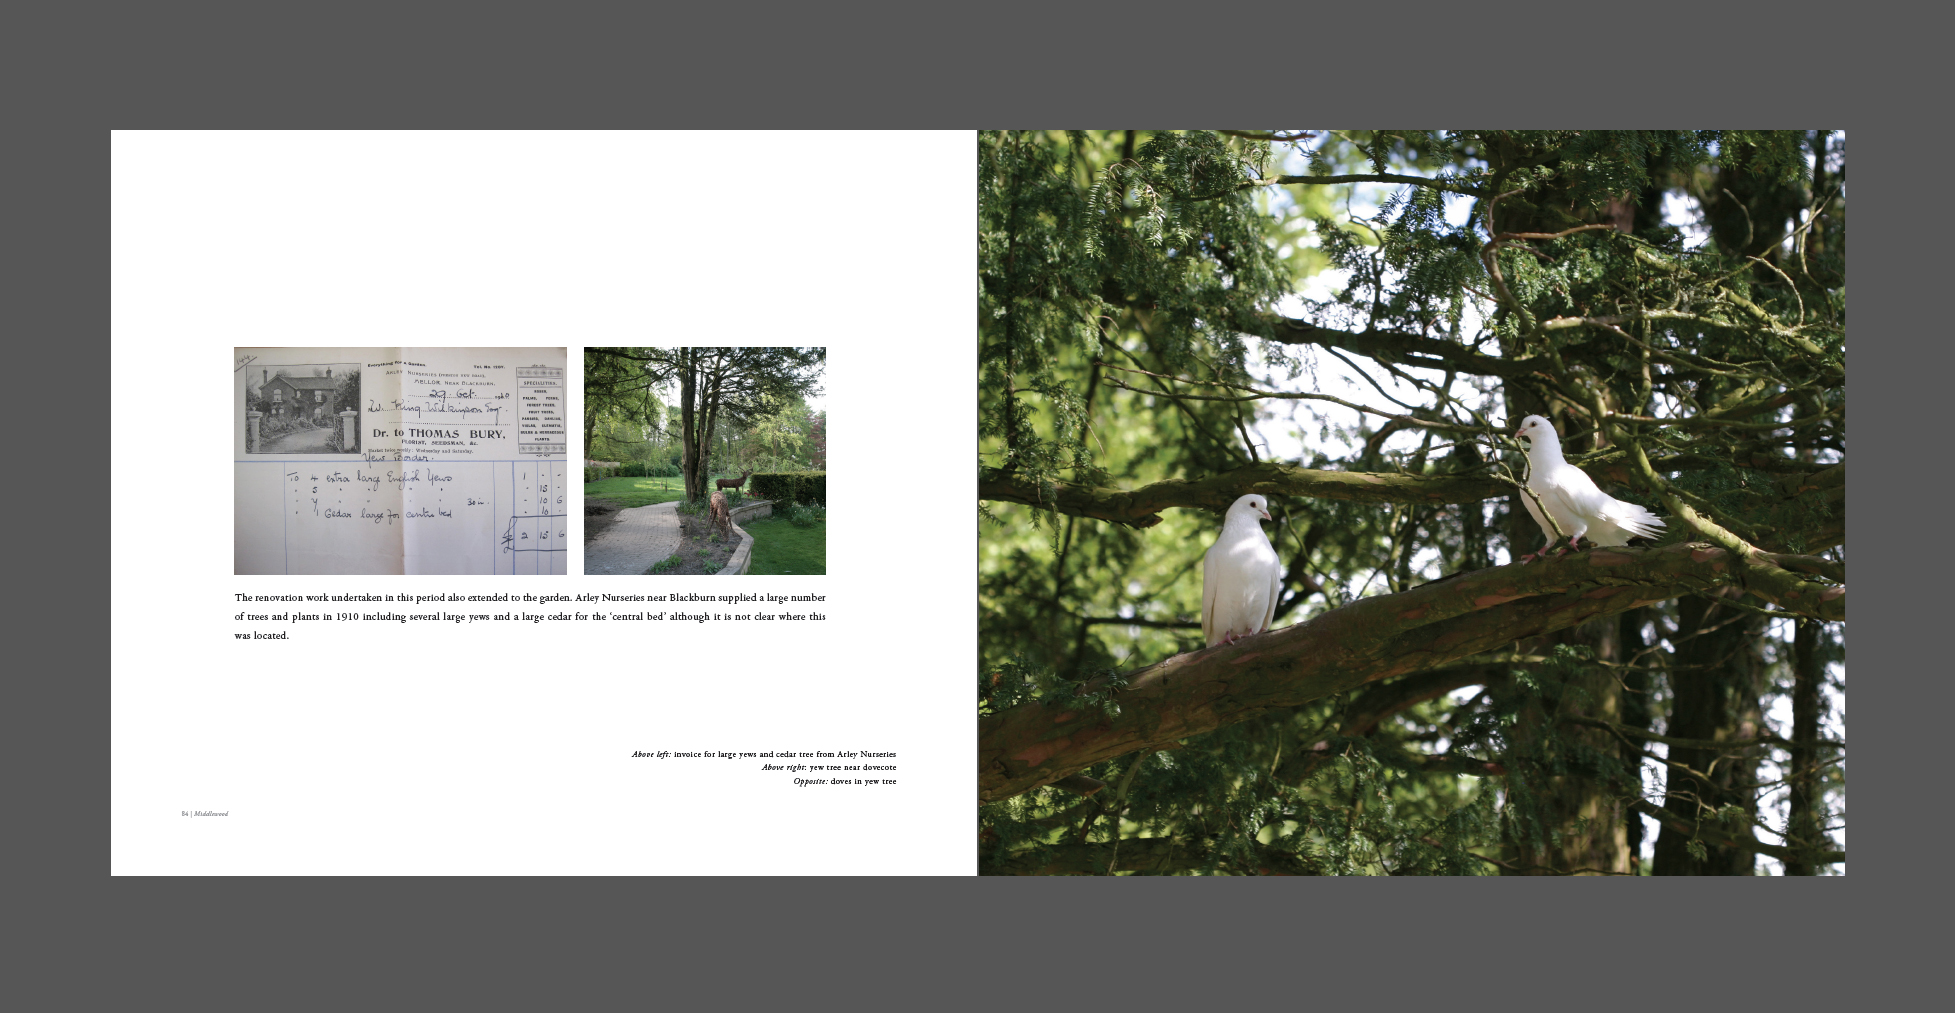 BENCHMARK_HOUSE_HISTORIES_Carol_Fulton_Middlewood_spread_84_85.jpg